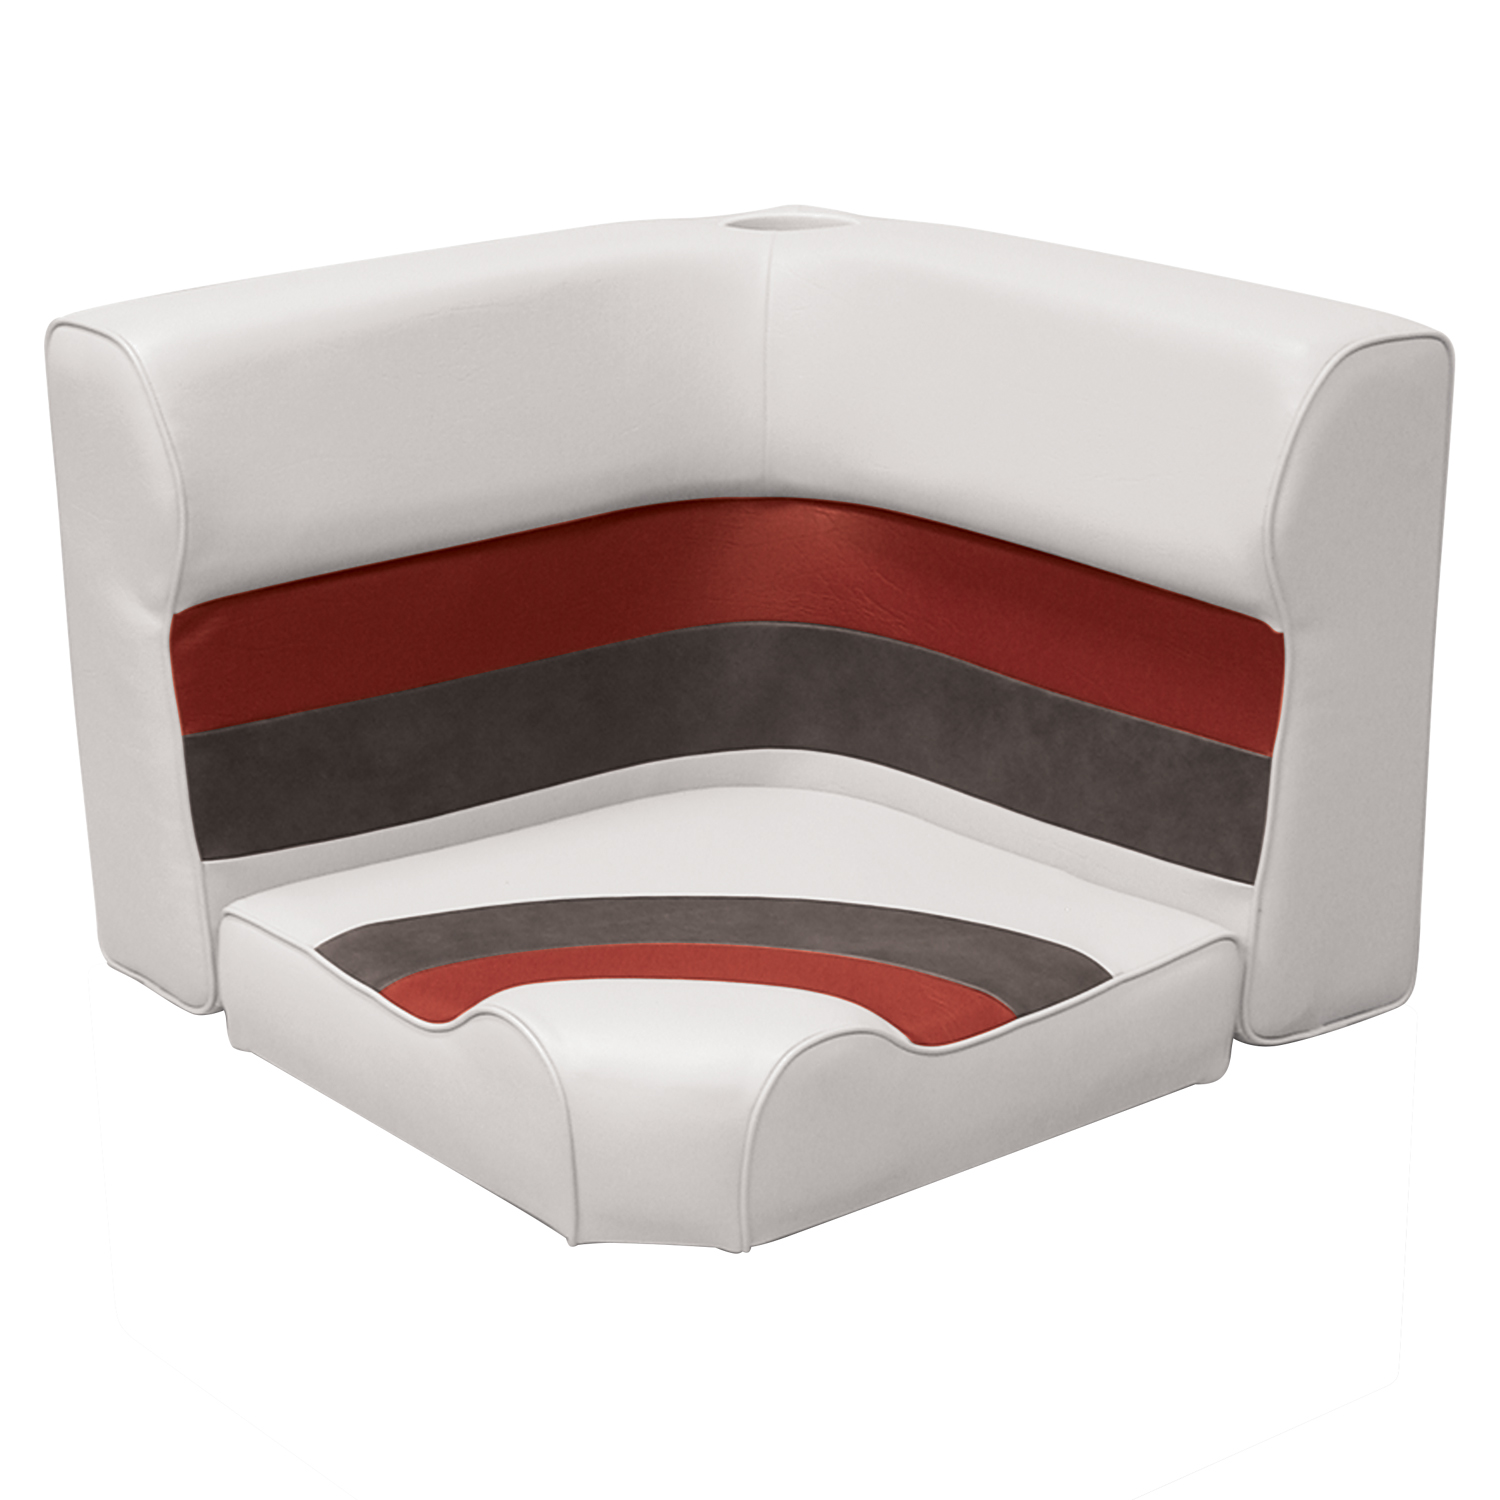 Wise 8WD133-1009 Deluxe Series Pontoon Radius Corner Lounge Seat and Backrest Cushion Set Only, Color: White/Red/Charcoal